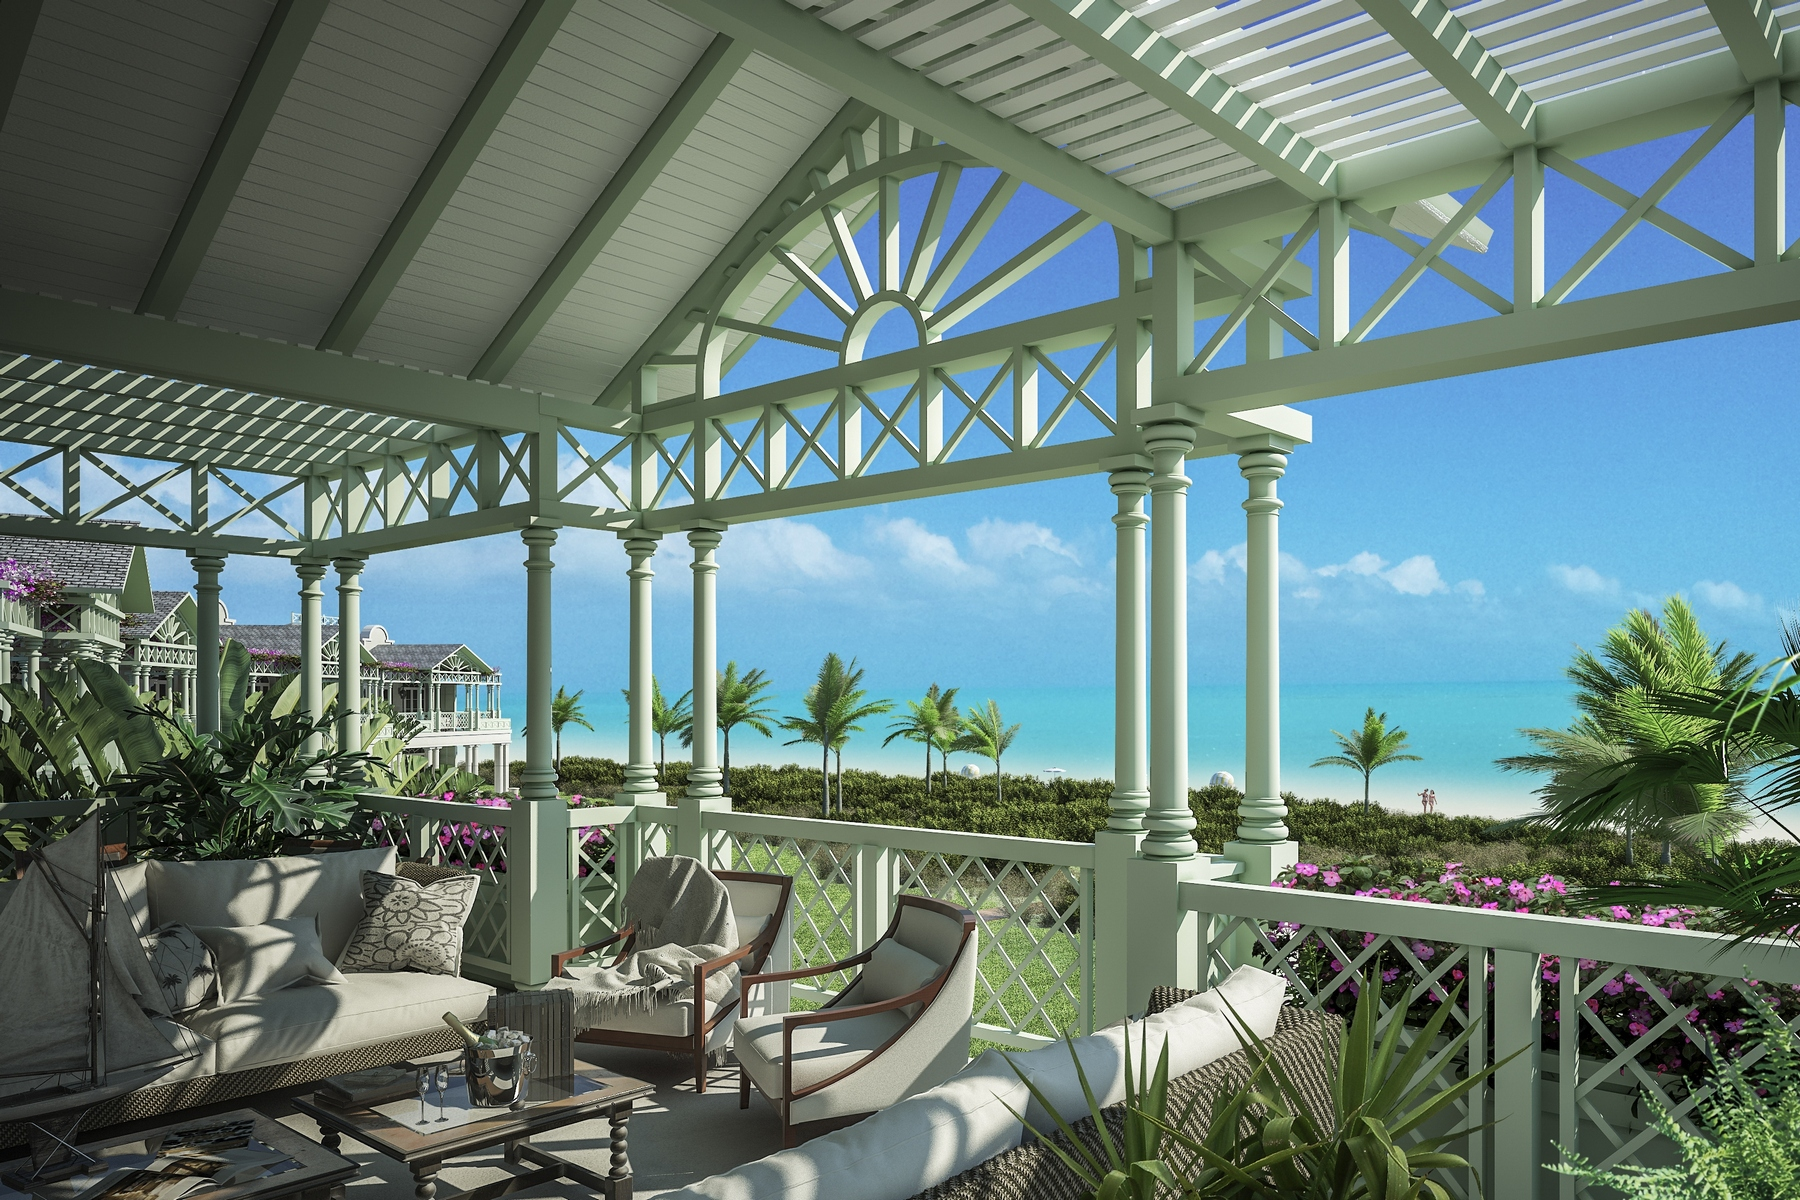 Casa Unifamiliar por un Venta en The Shore Club ~ Villa 4 The Shore Club, Long Bay, Providenciales Islas Turcas Y Caicos